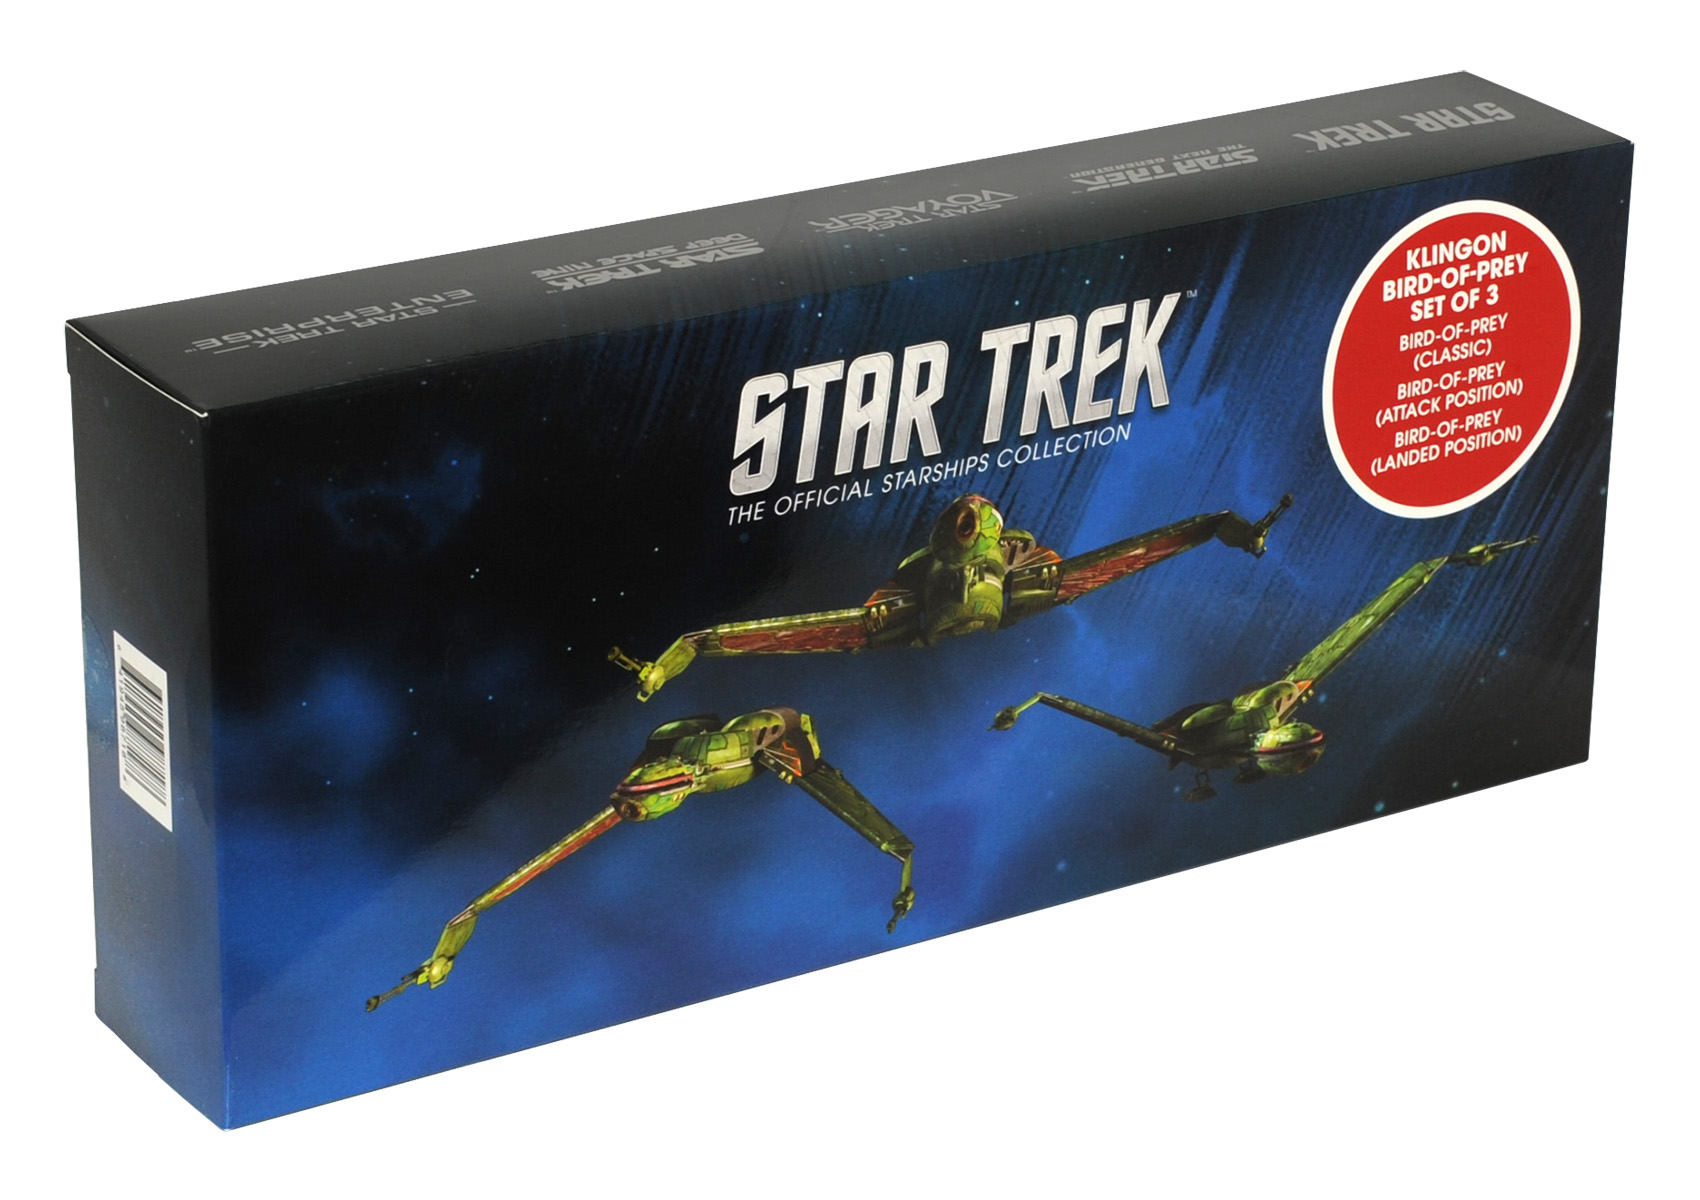 Eaglemoss Star Trek Starships Klingon Bird-of-Prey Set Box